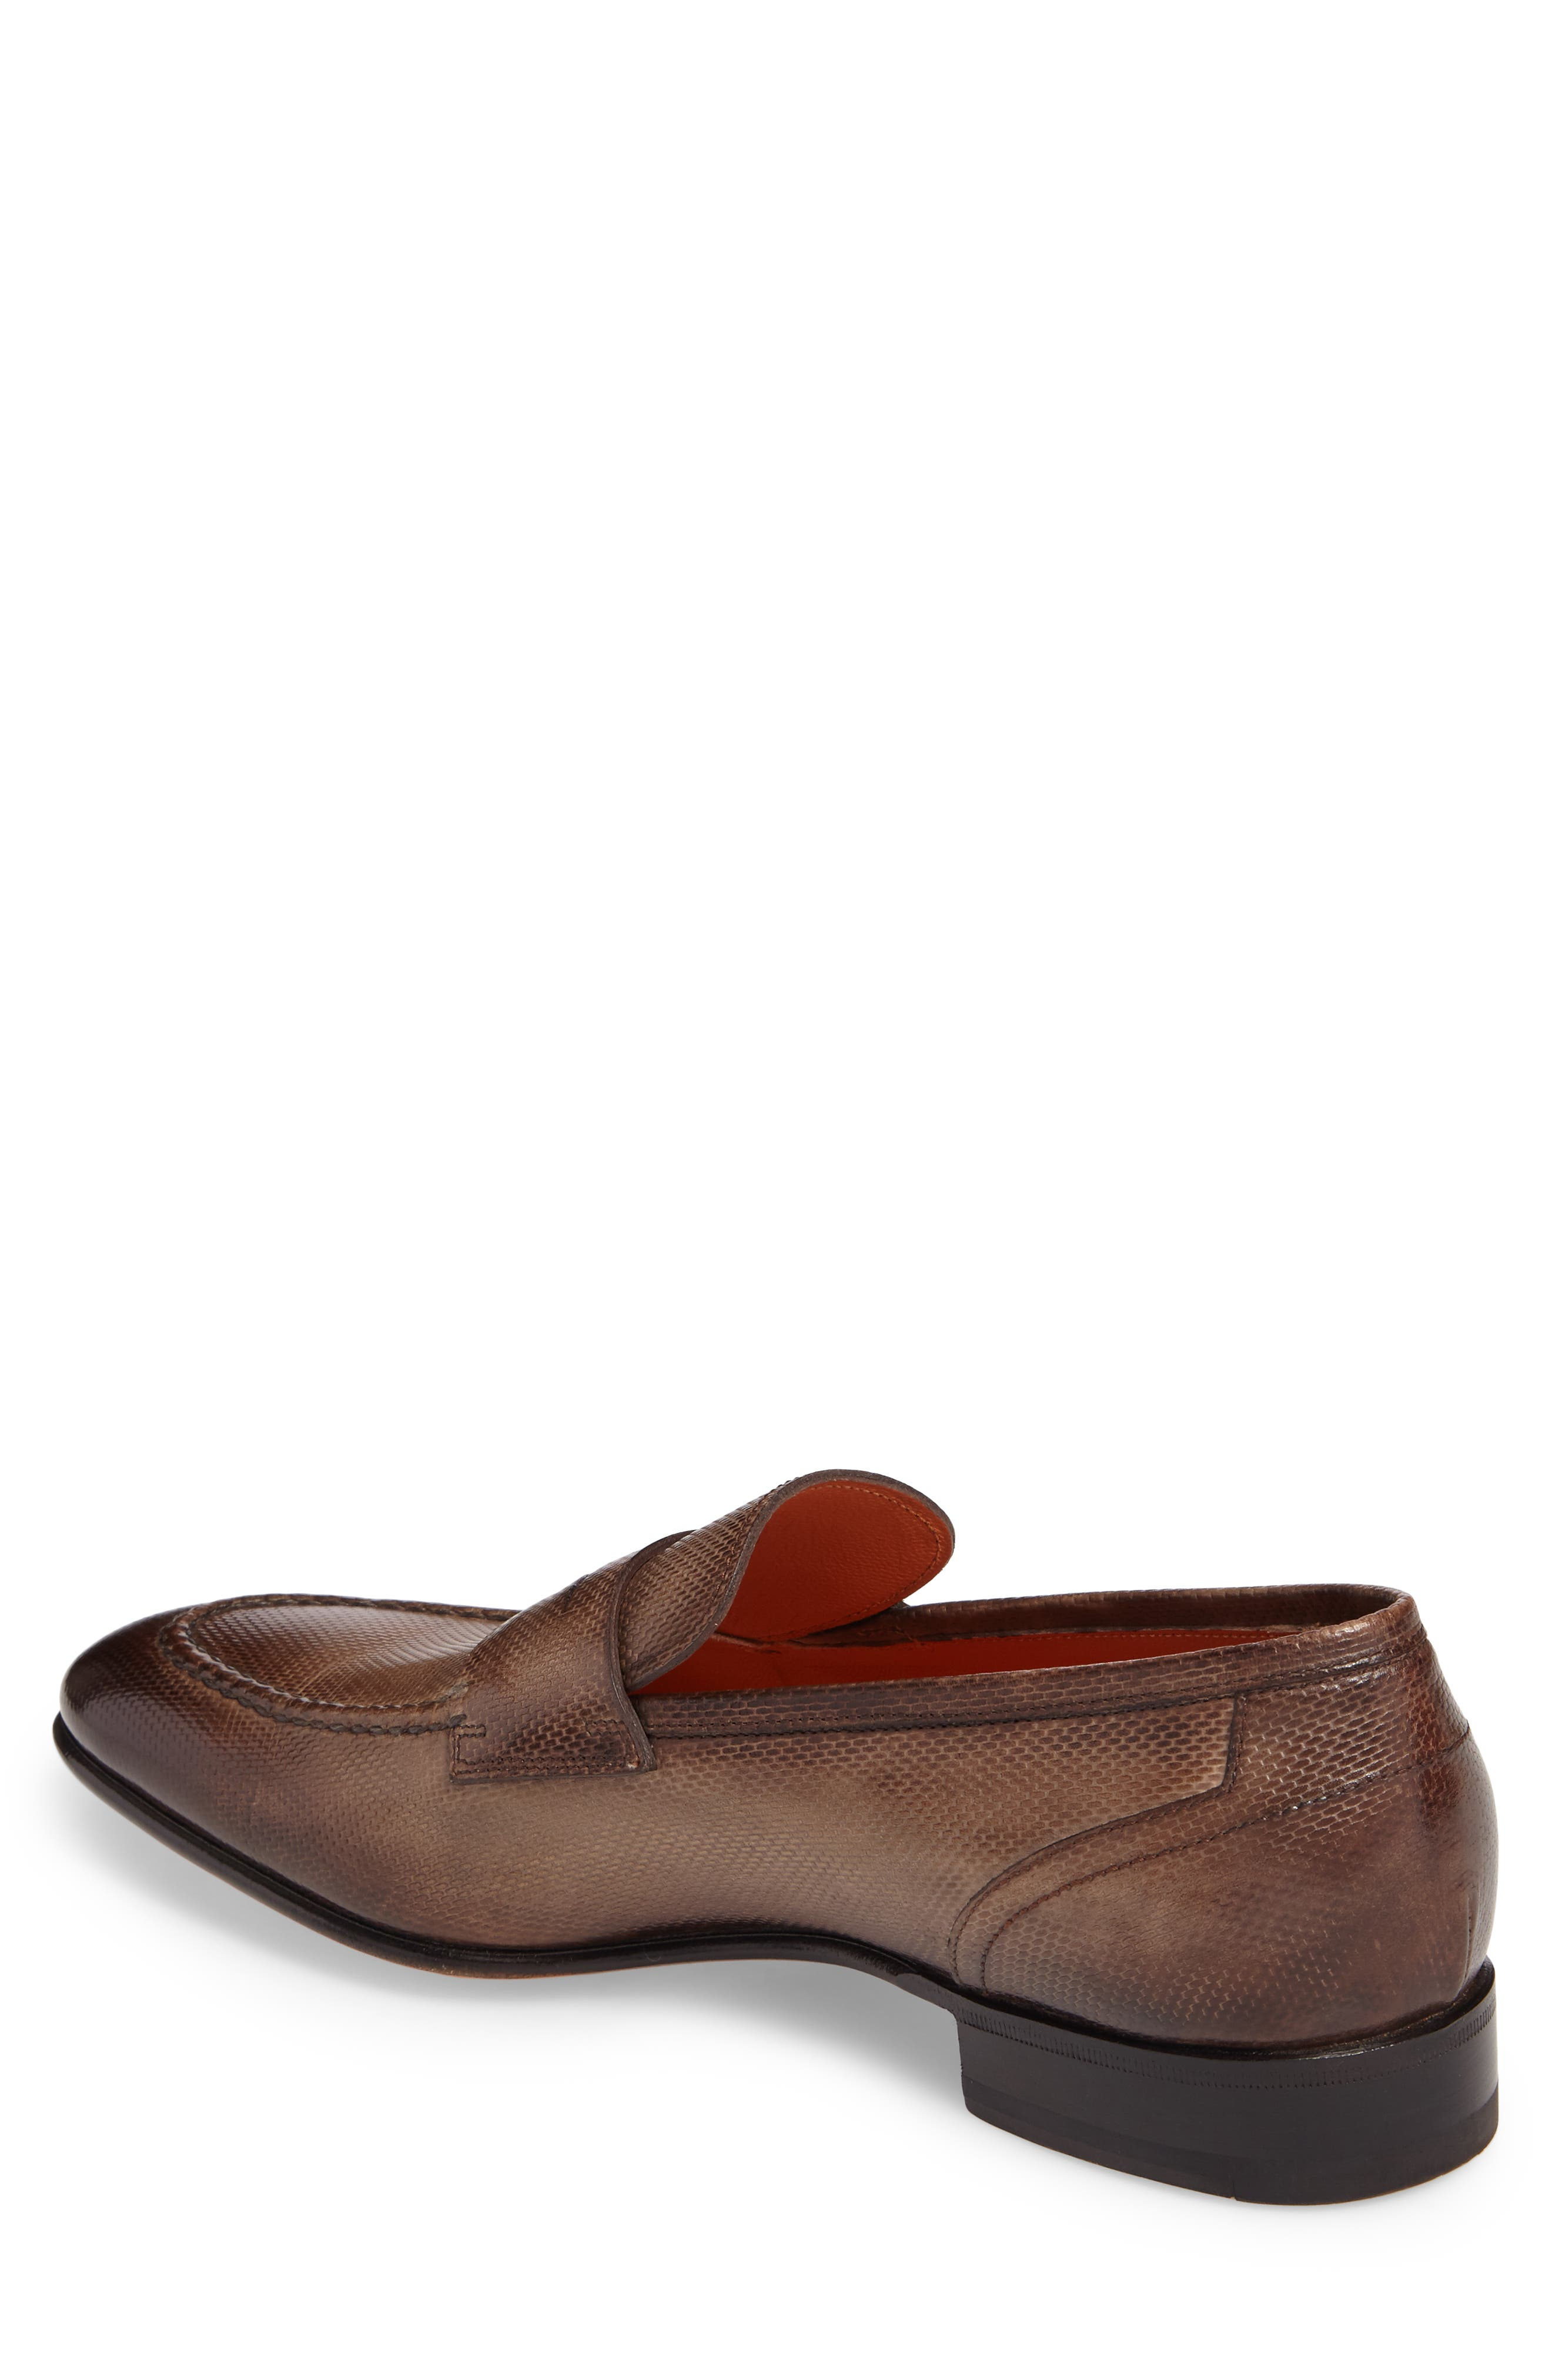 Felipe Penny Loafer,                             Alternate thumbnail 2, color,                             Brown